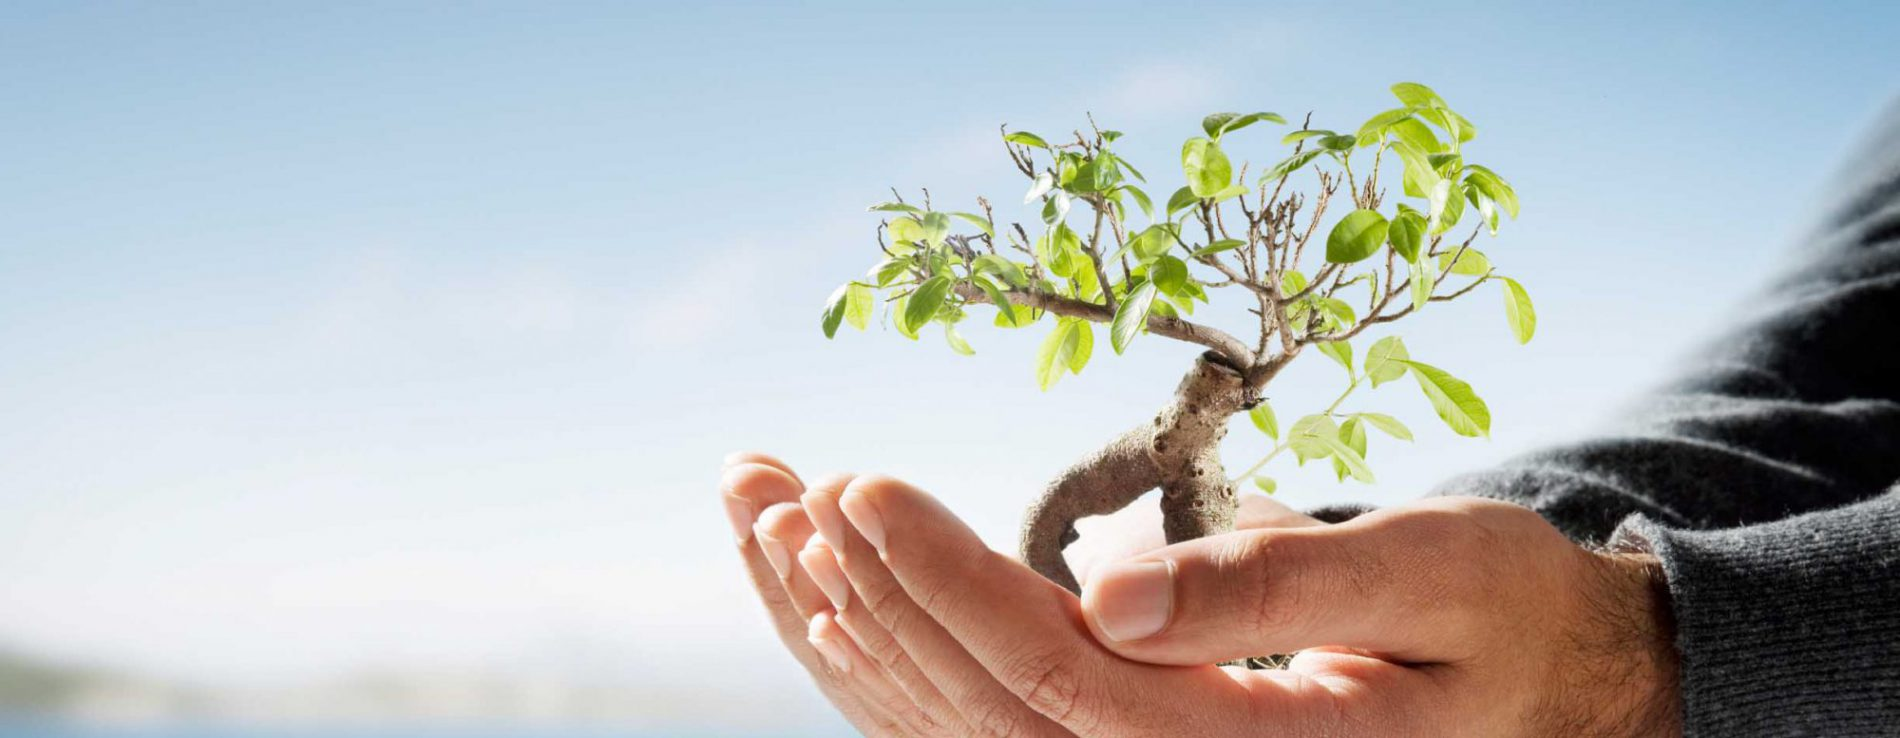 tree-in-hand-banner-e1463574748186